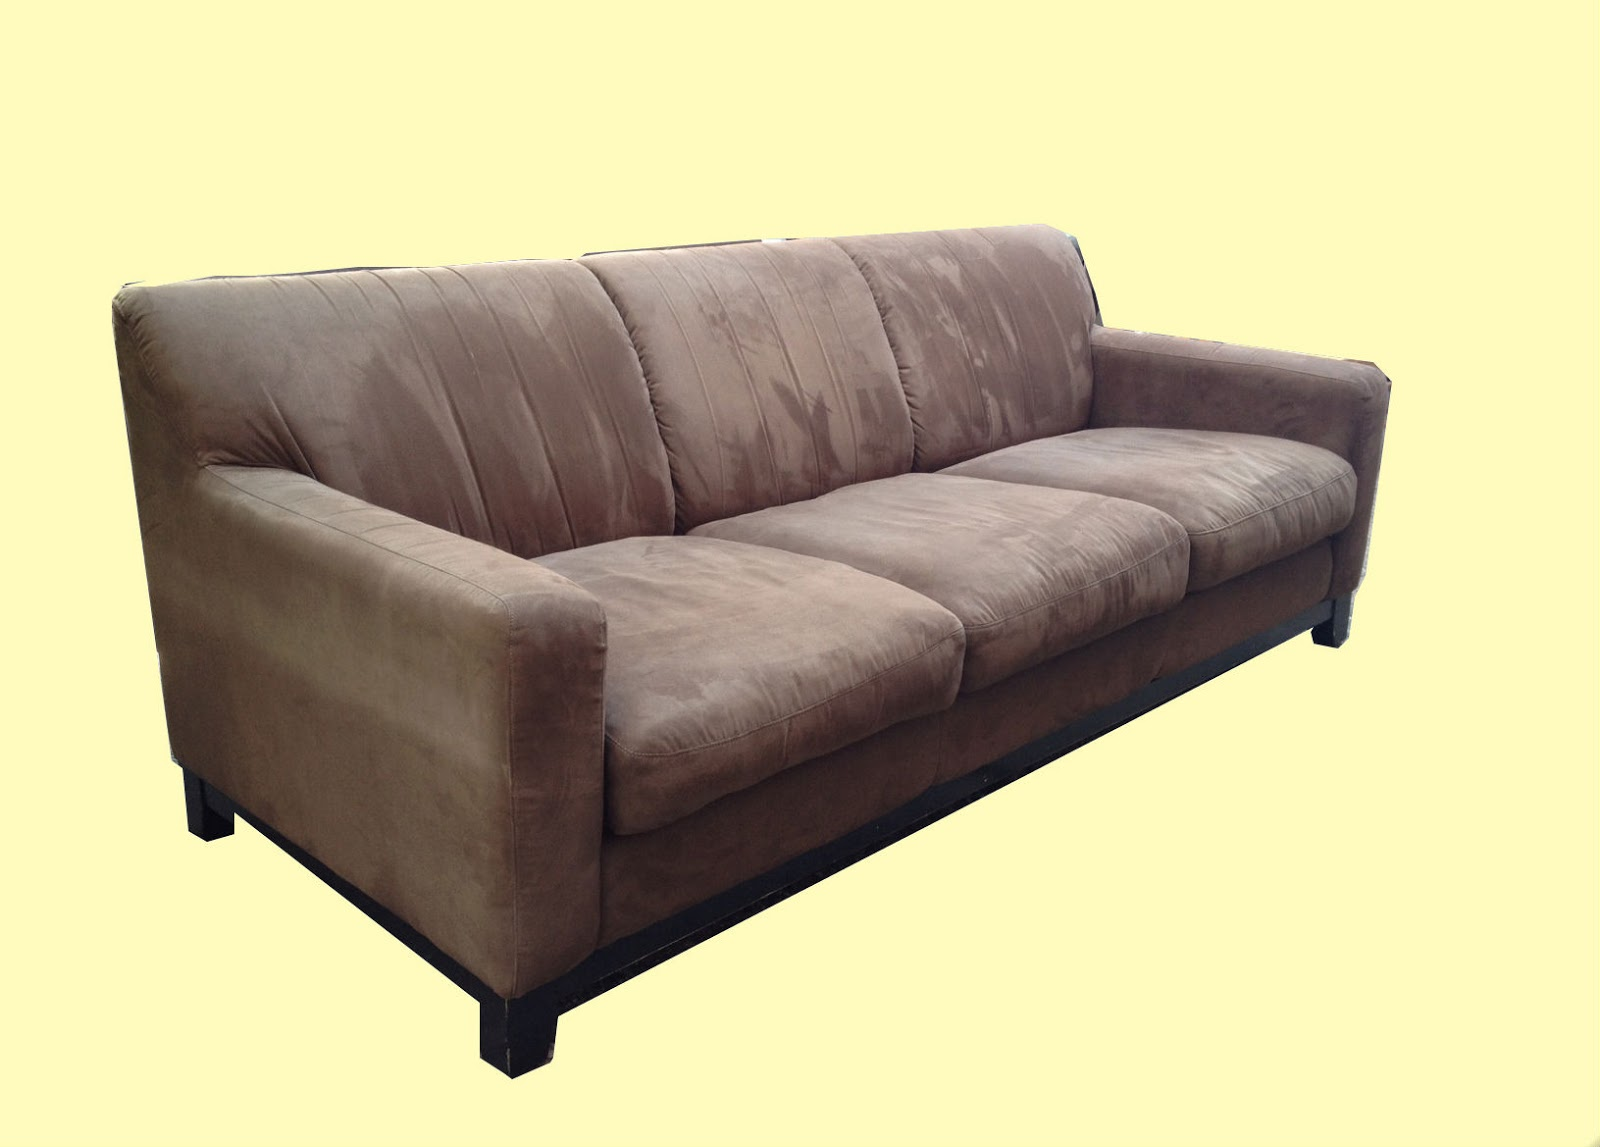 Brown suede sofa for Suede loveseat